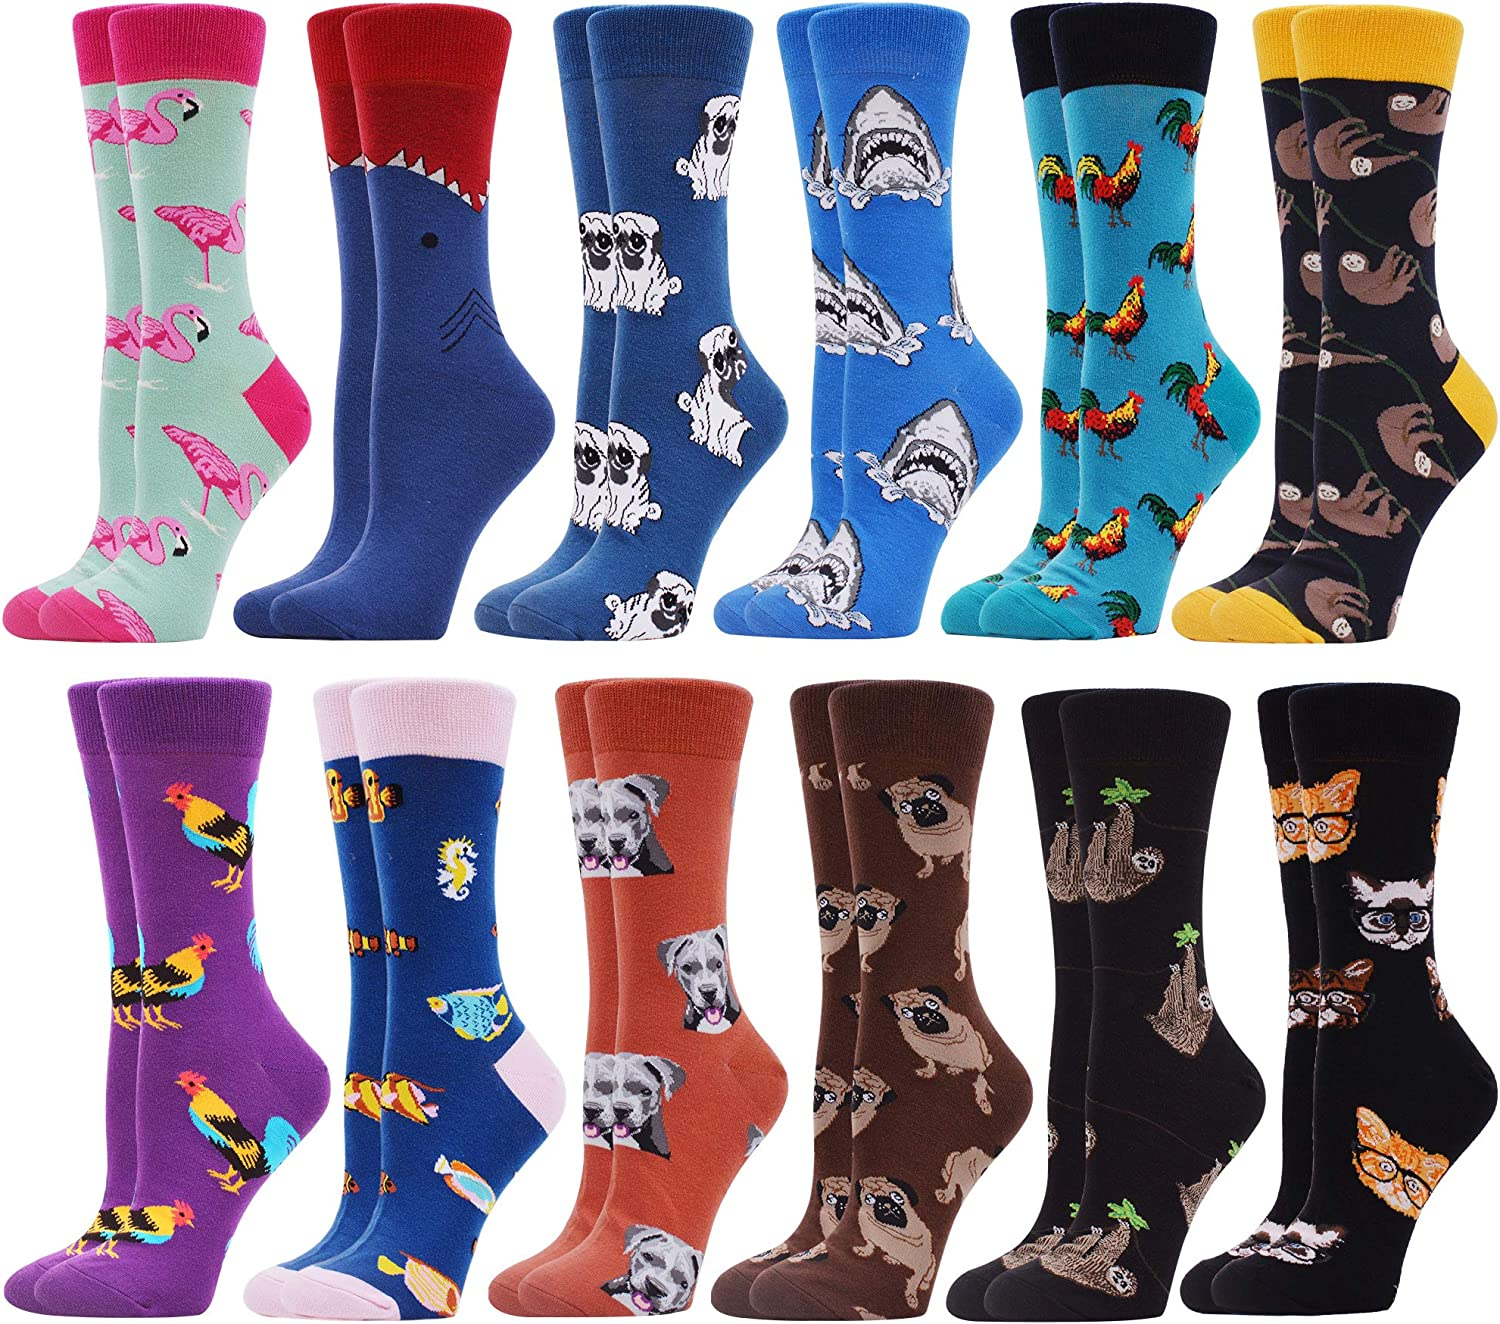 WeciBor Womens Funny Printed Casual Combed Cotton Crew Socks Packs